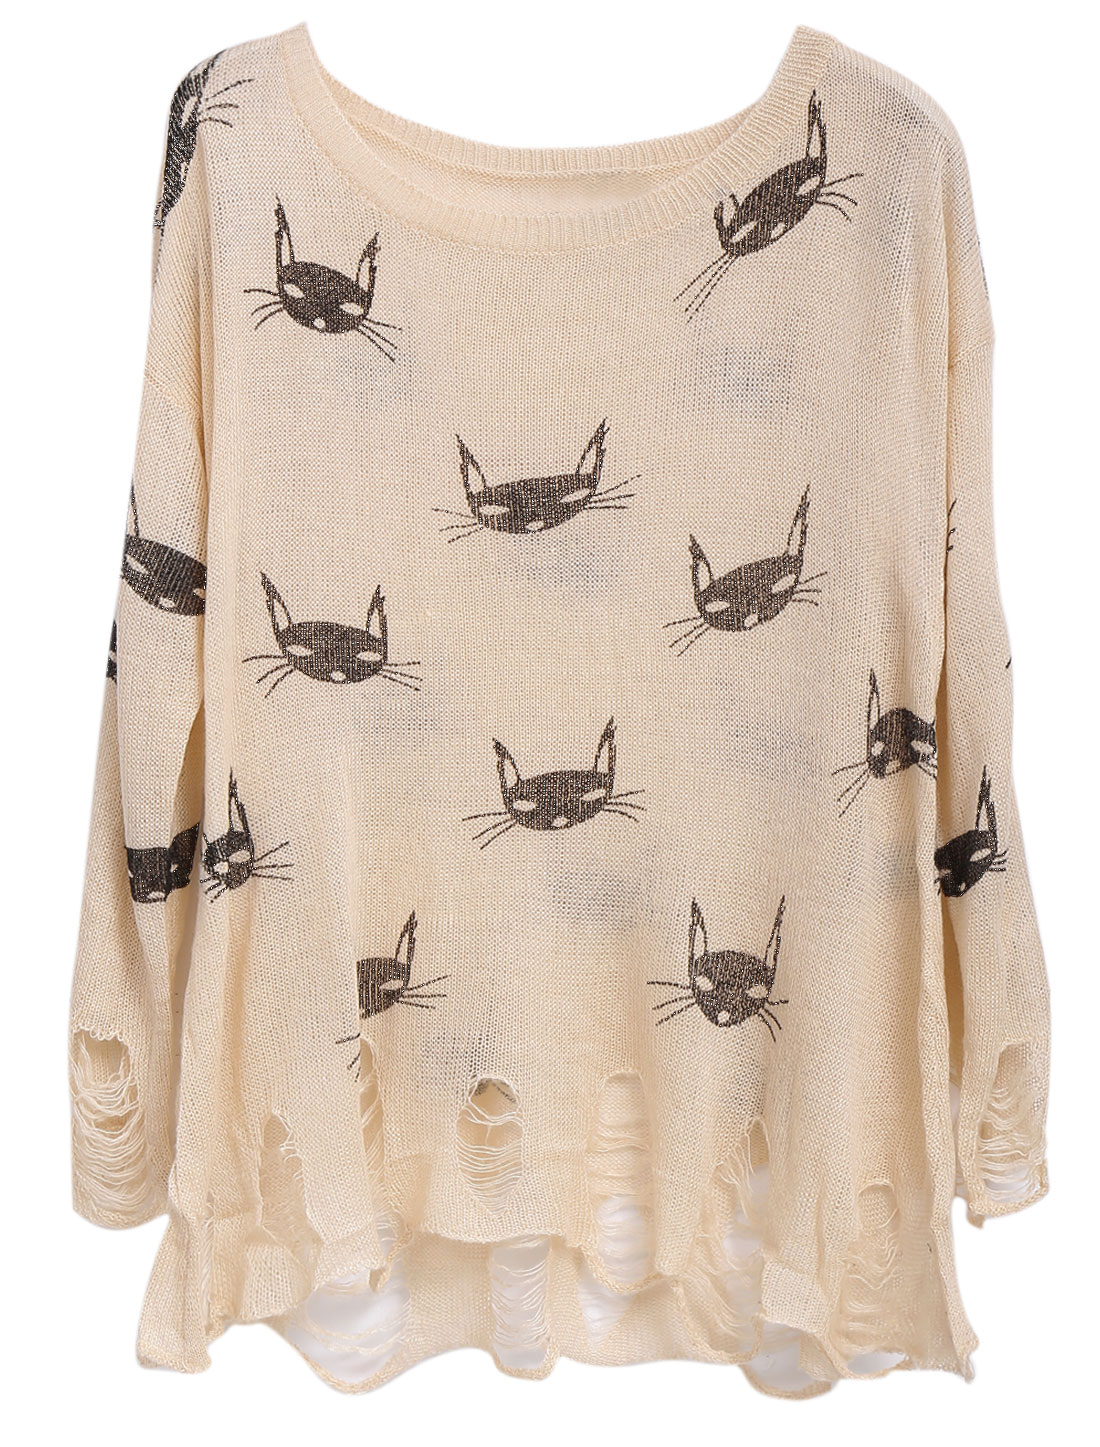 Lady Slipover Cats Prints Destroied Design Loose Knit Top Pale Pink S